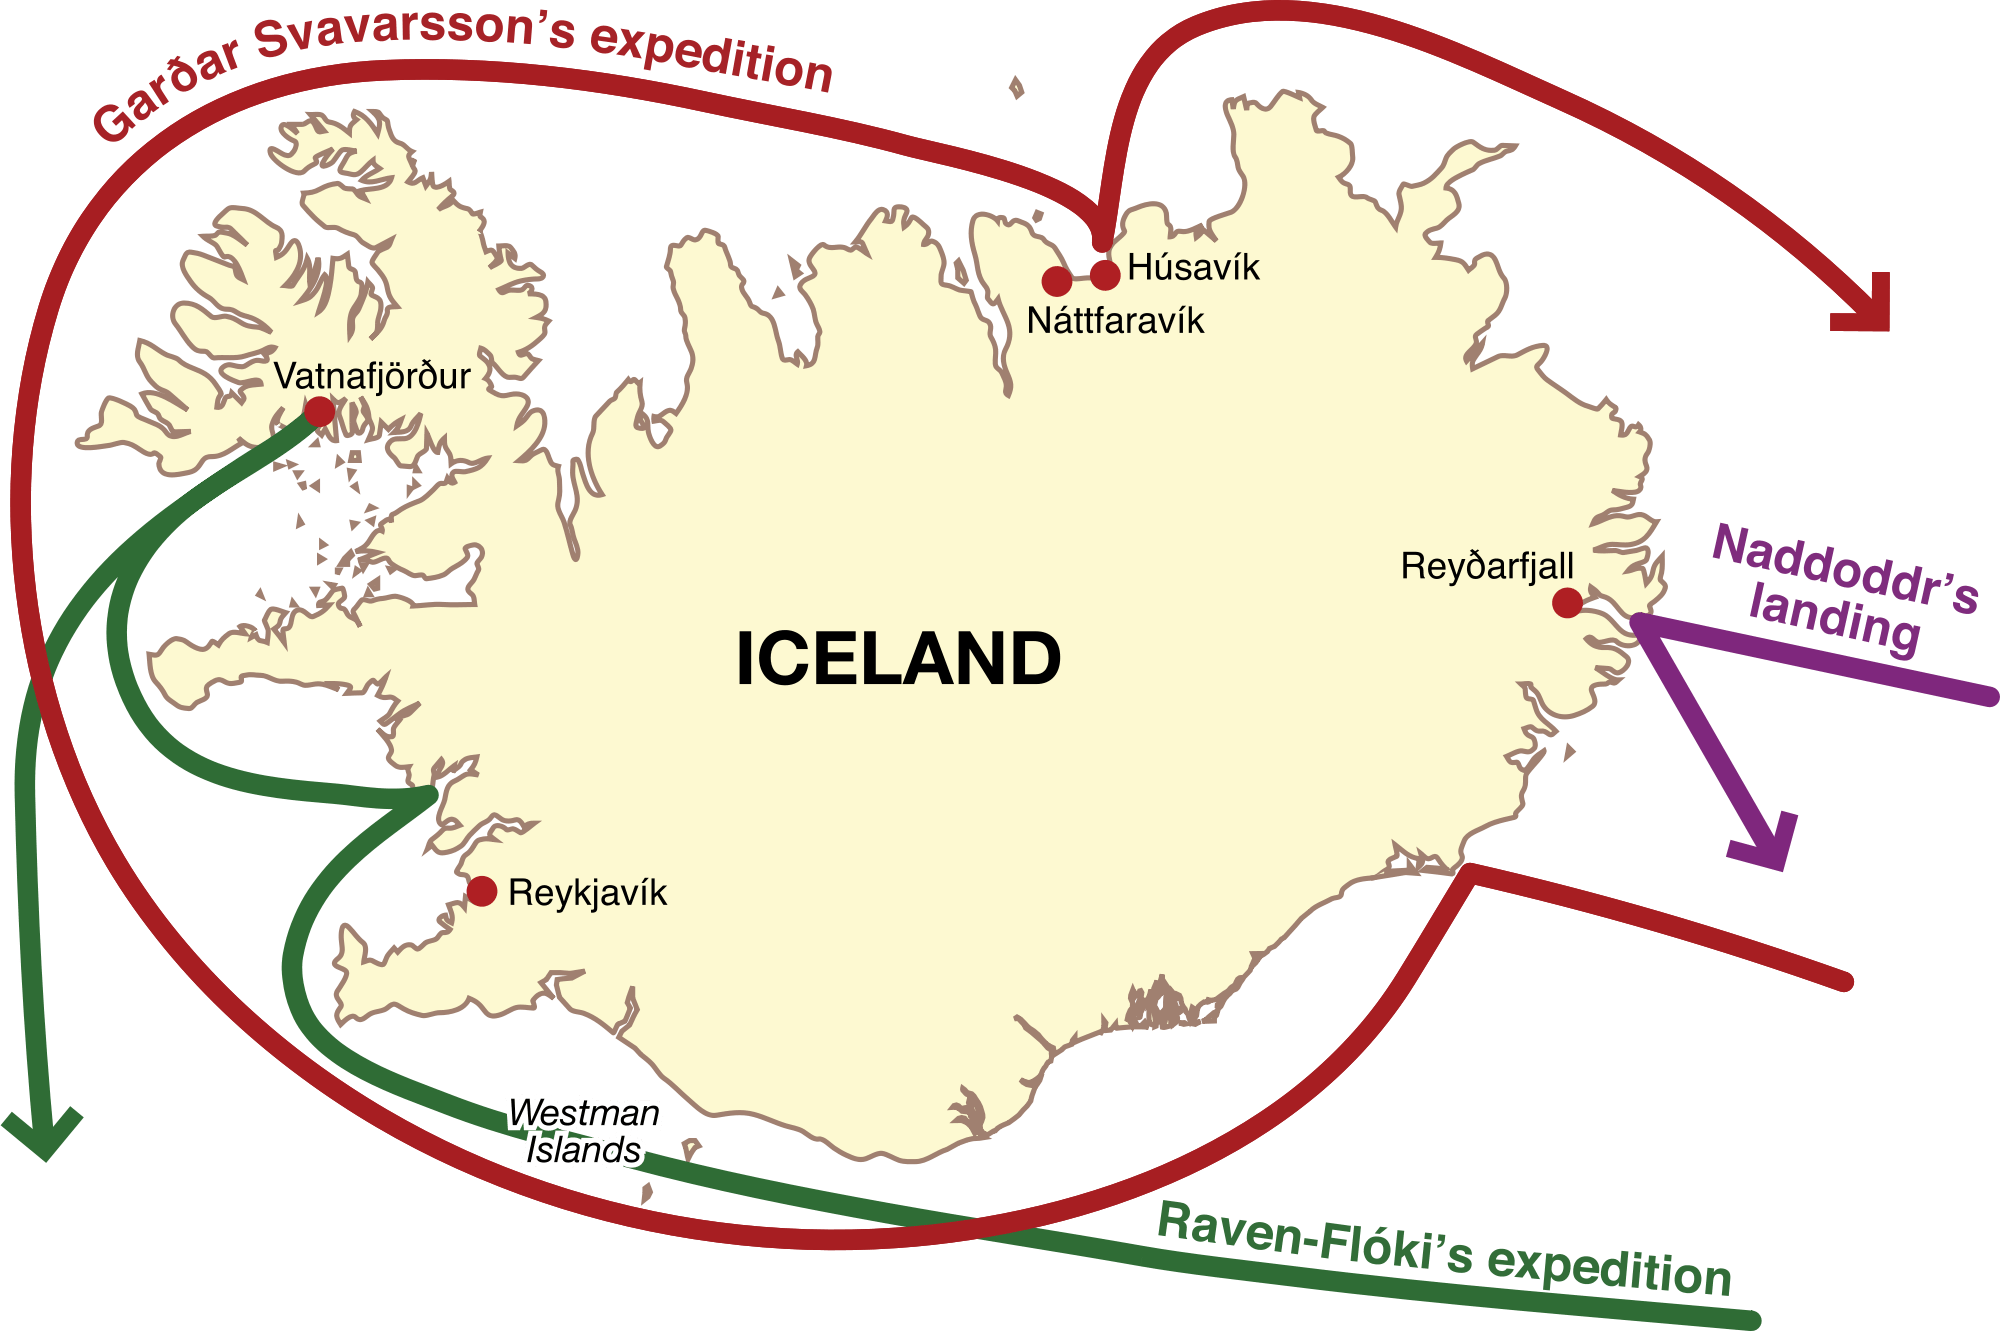 The norse discovery and settlement of iceland during the viking age map highlighting the norse expeditions to iceland during the 9th century image source commonsmedia gumiabroncs